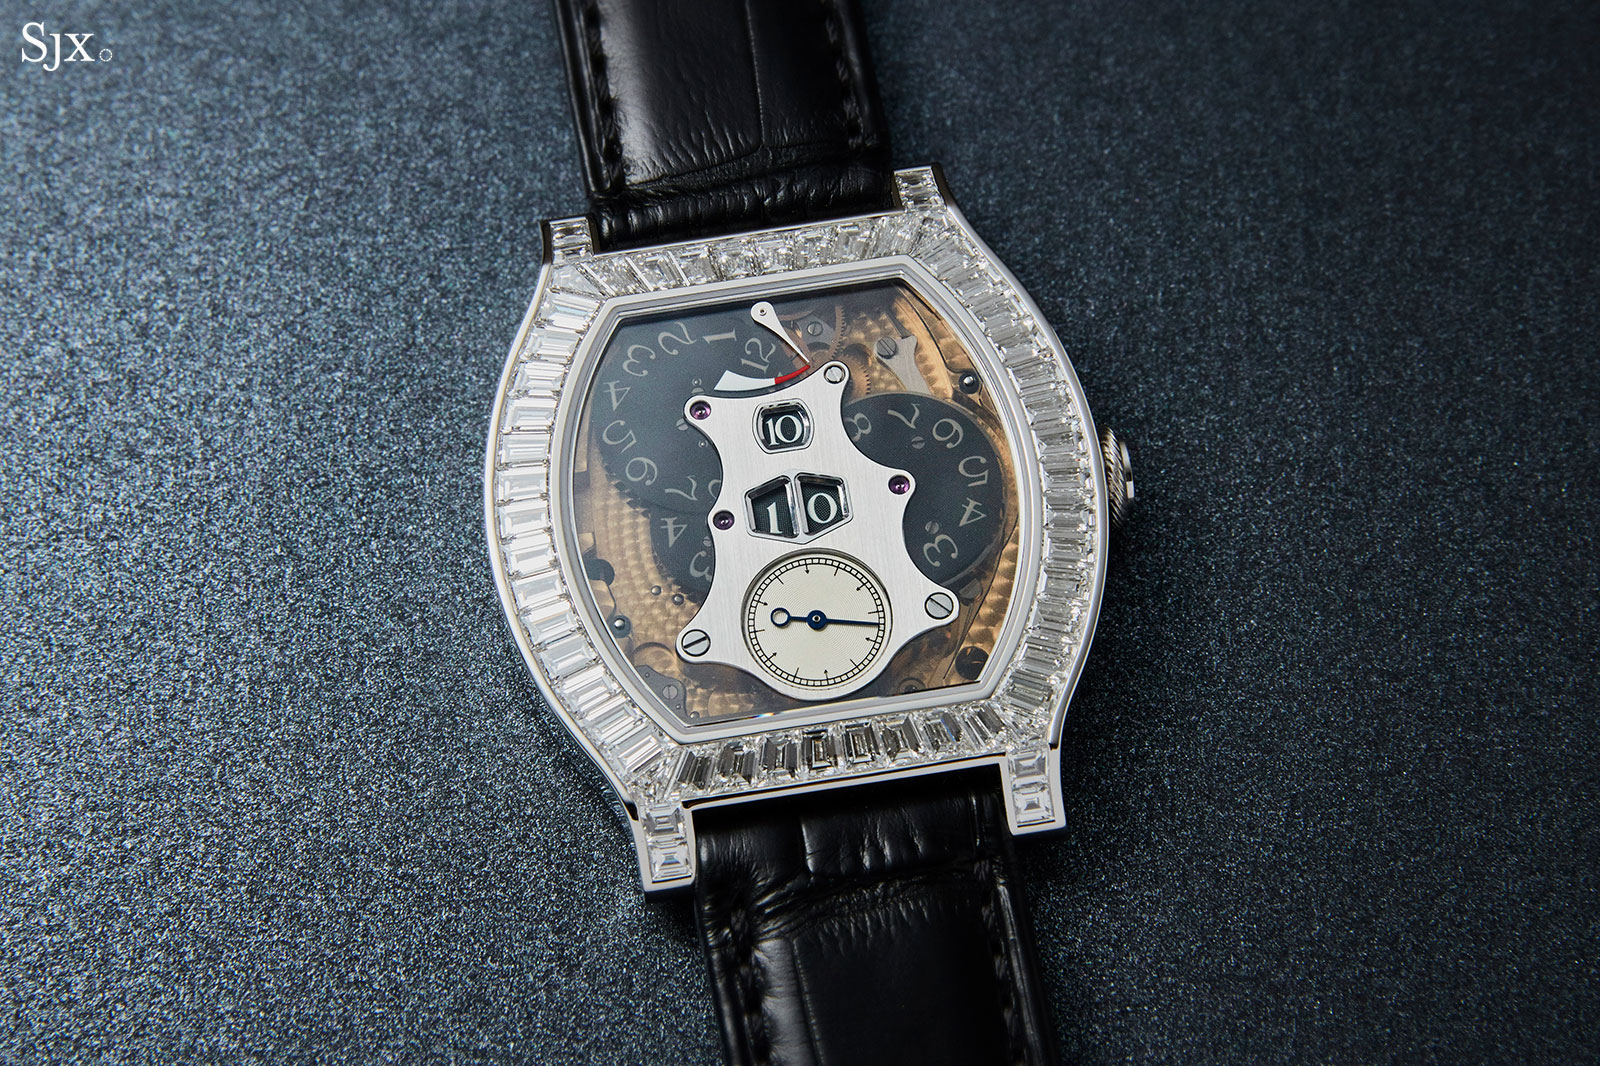 FP Journe Vagabondage II diamonds 1